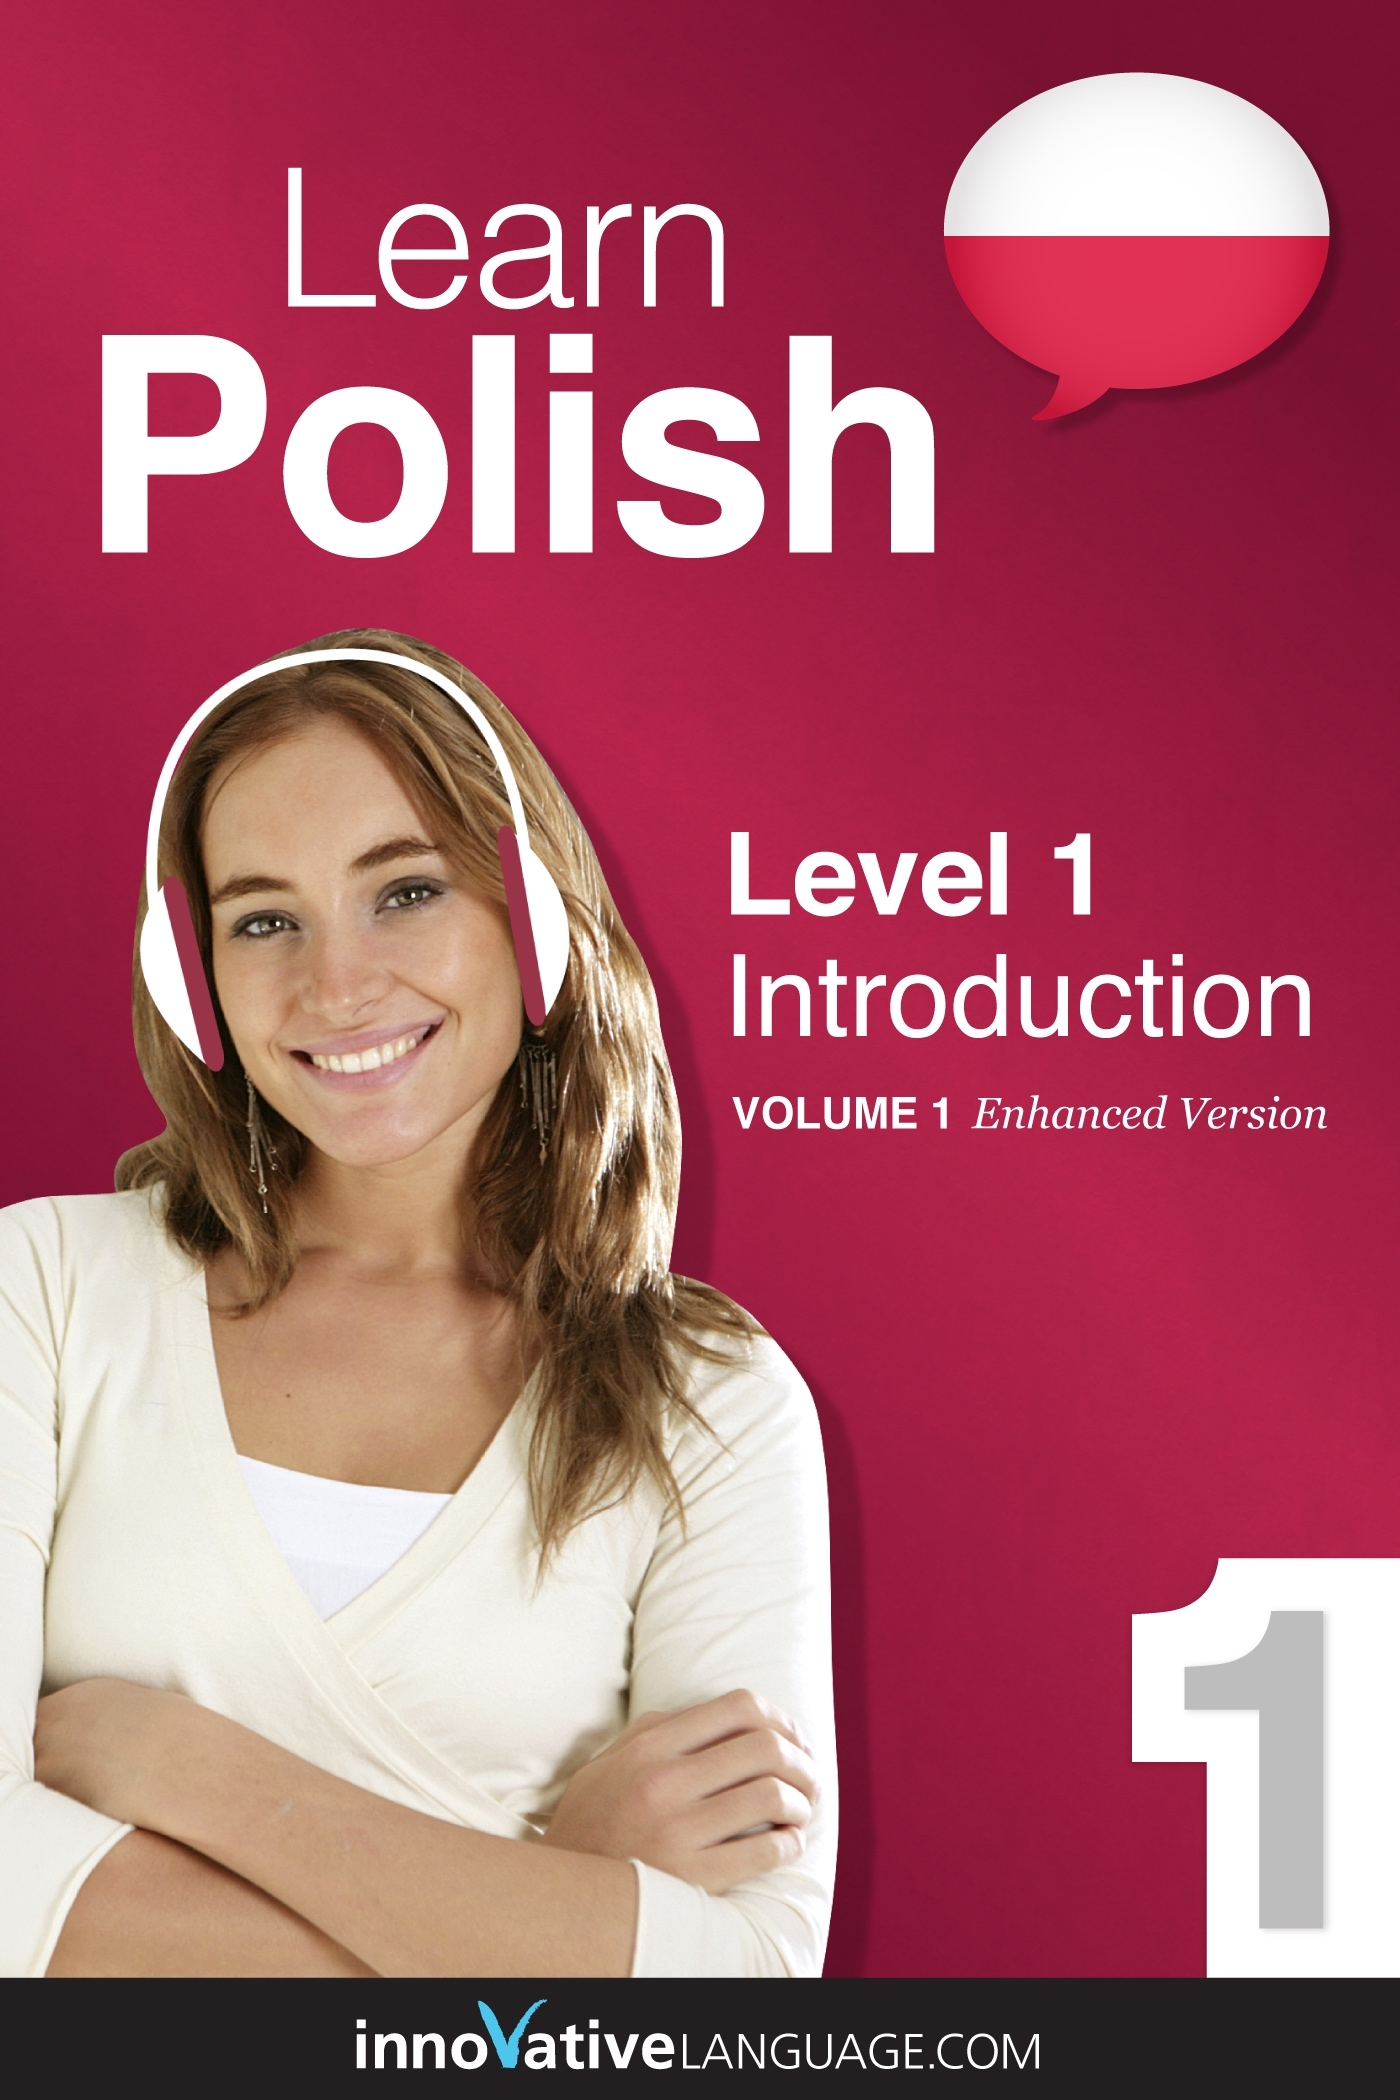 [eBook] Learn Polish - Level 1: Introduction